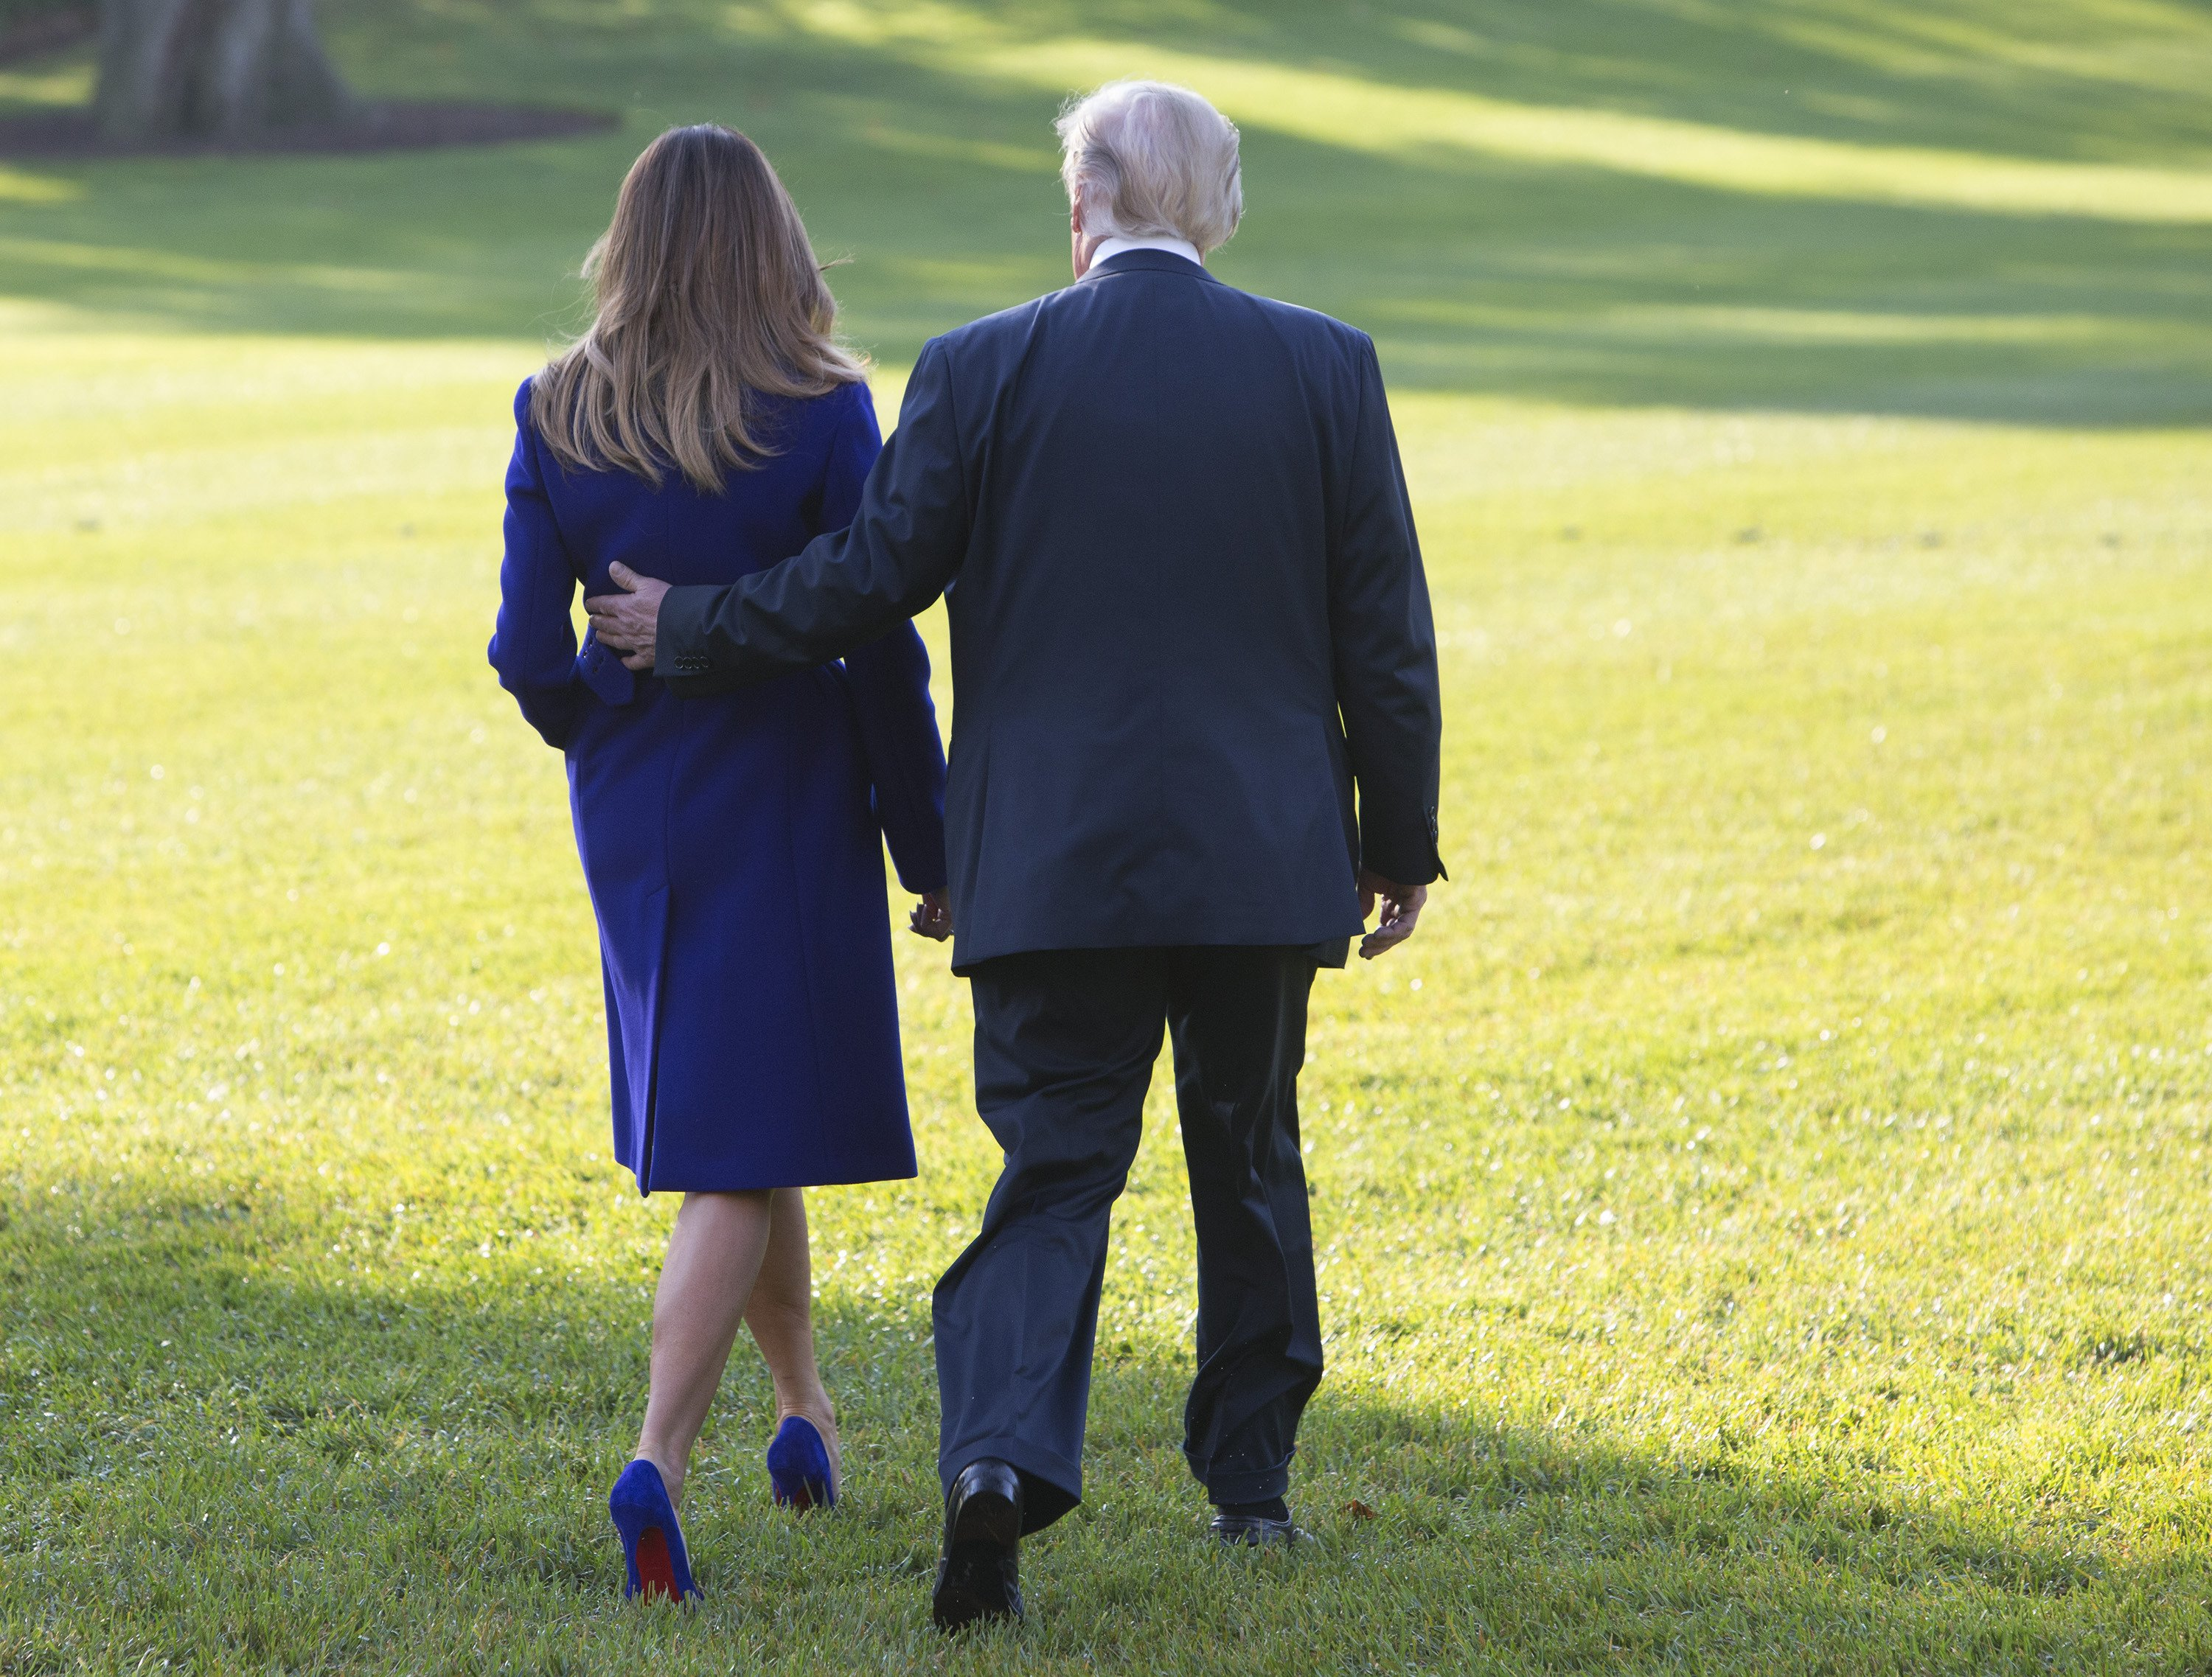 United States President Donald J. Trump and first lady Melania Trump walk on the South Lawn as they depart the White House in Washington, DC, November 3, 2017 for a multi-day trip to Hawaii and then on to Asia. Photo, Image: 354583936, License: Rights-managed, Restrictions: , Model Release: no, Credit line: Profimedia, Insight Media